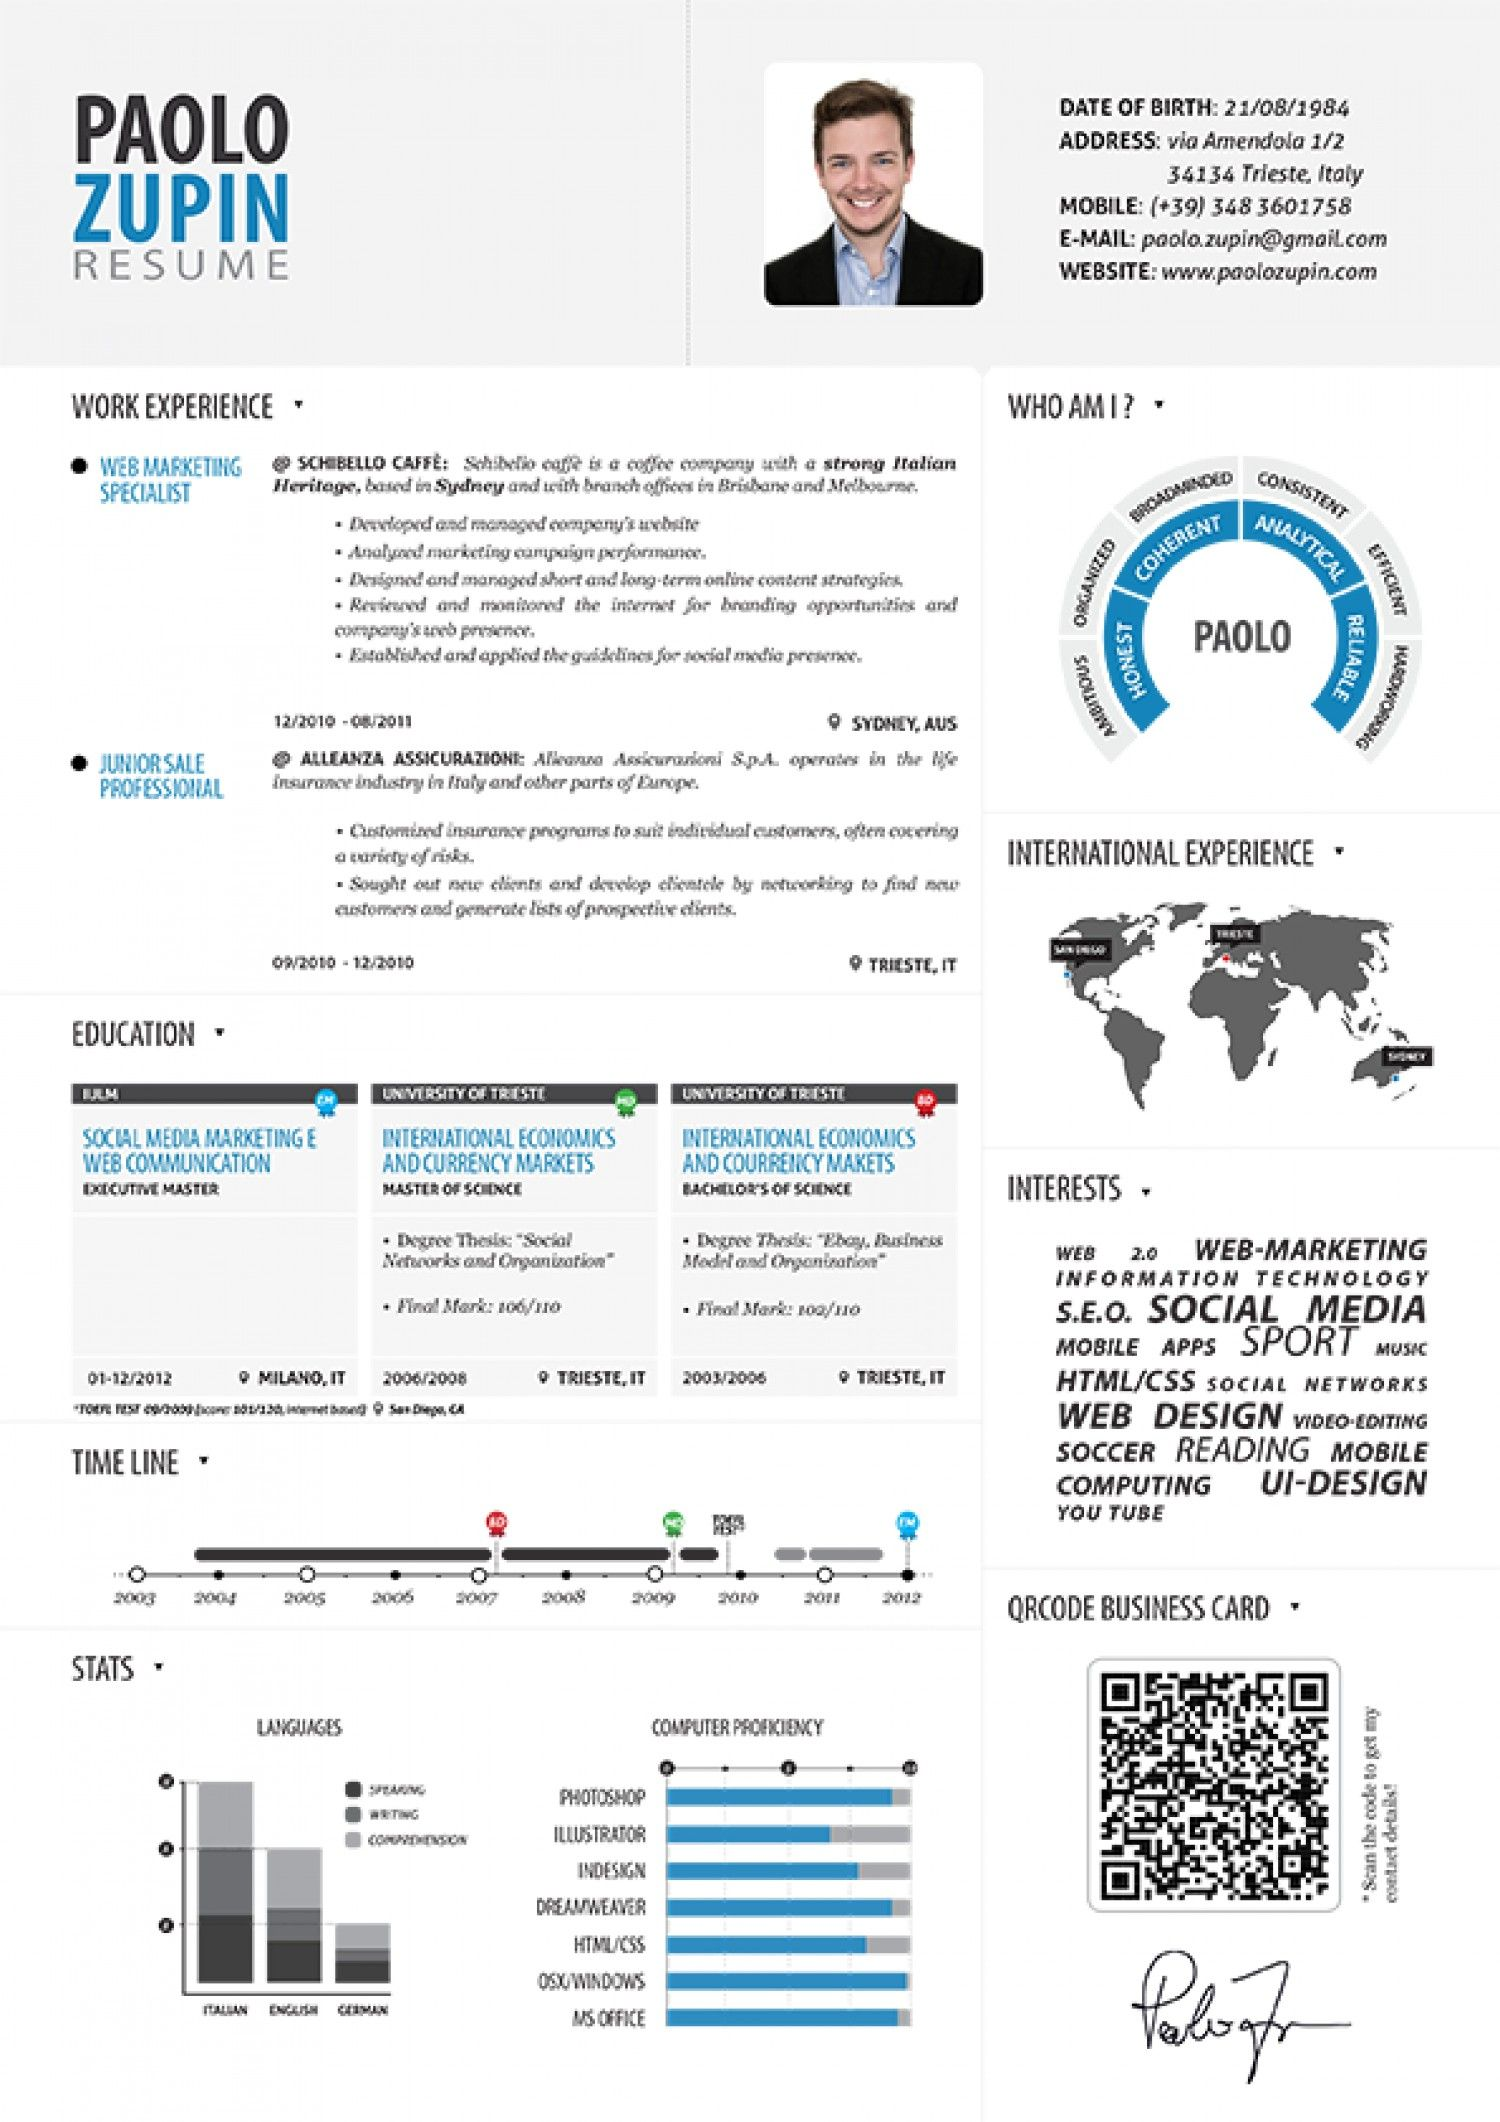 Opposenewapstandardsus  Stunning  Images About Resume  Cv Design On Pinterest  Infographic  With Exquisite  Images About Resume  Cv Design On Pinterest  Infographic Resume Resume And Resume Design With Cute Resume Or Resume Also Resume For Graphic Designer In Addition Office Manager Sample Resume And Data Analytics Resume As Well As Interest For Resume Additionally Extracurricular Activities On Resume From Pinterestcom With Opposenewapstandardsus  Exquisite  Images About Resume  Cv Design On Pinterest  Infographic  With Cute  Images About Resume  Cv Design On Pinterest  Infographic Resume Resume And Resume Design And Stunning Resume Or Resume Also Resume For Graphic Designer In Addition Office Manager Sample Resume From Pinterestcom